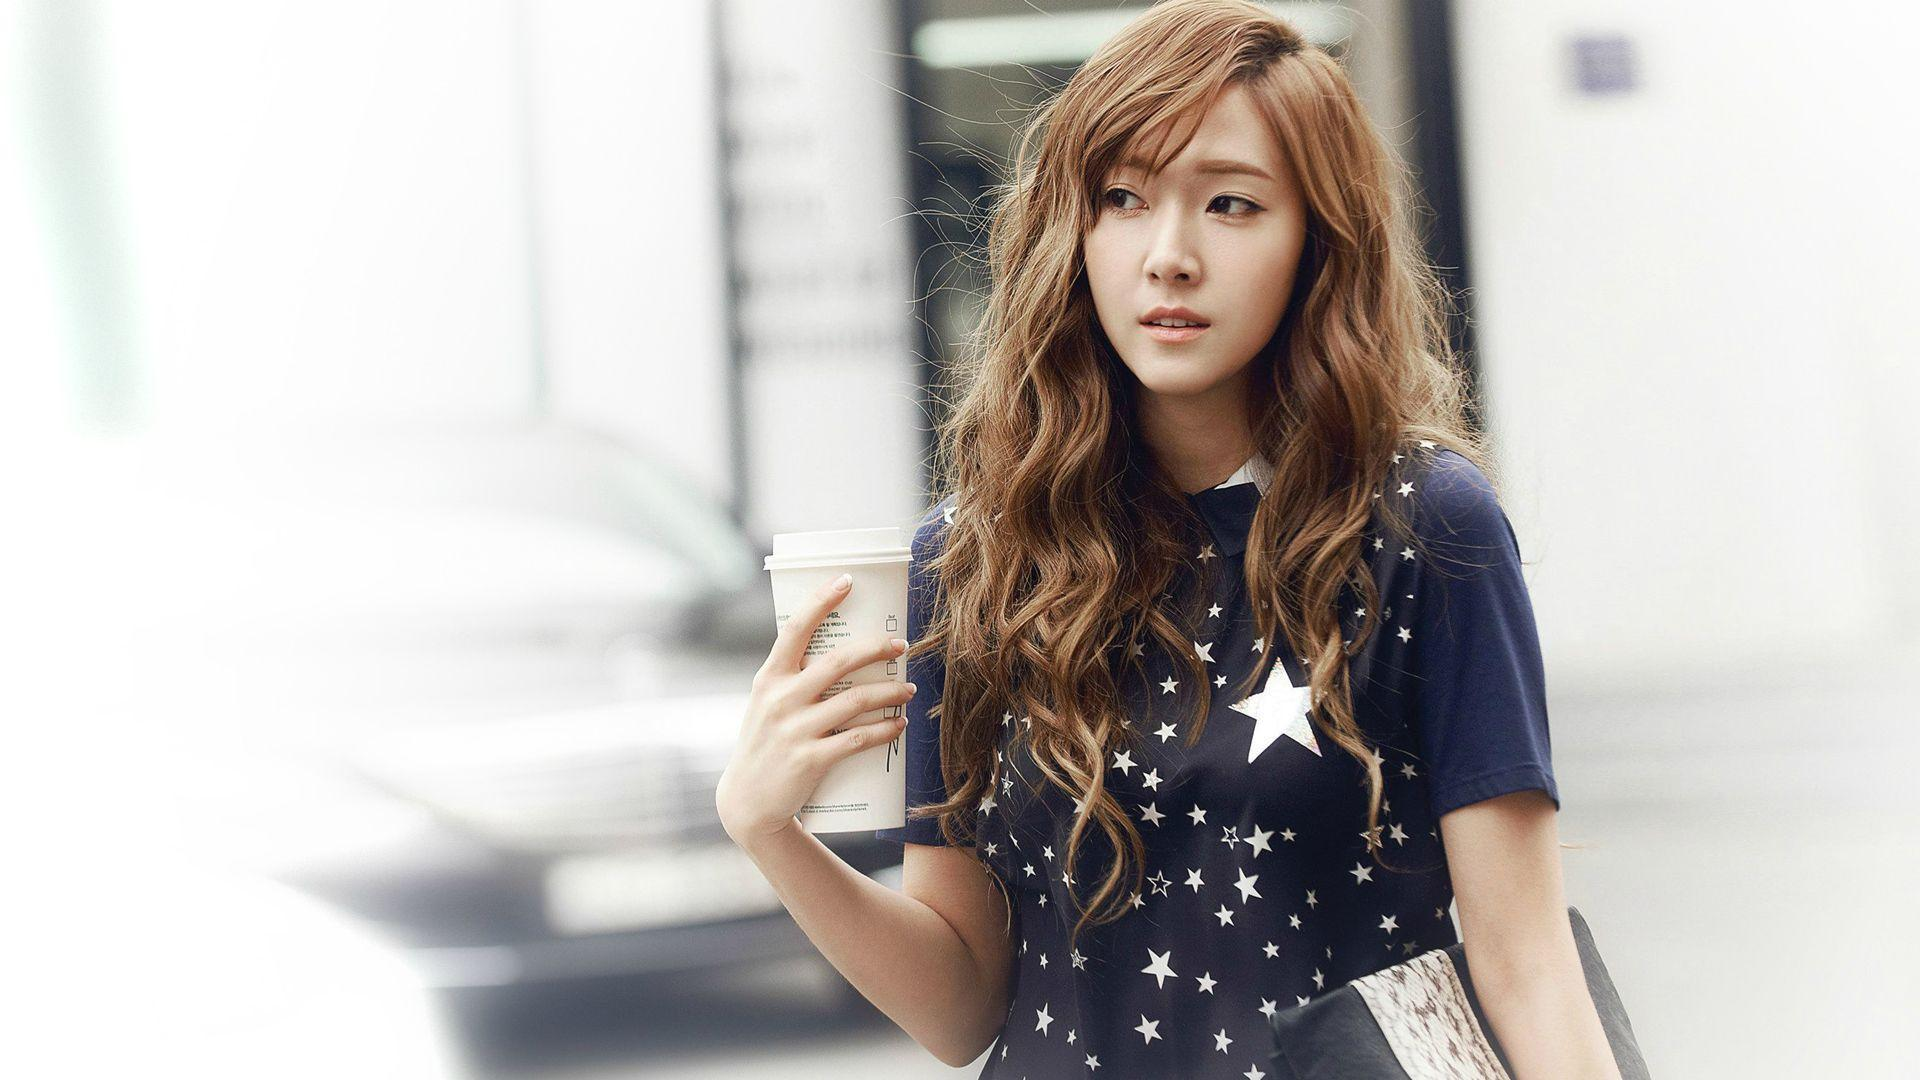 Jessica Jung Wallpaper Image Group 42 1920x1080